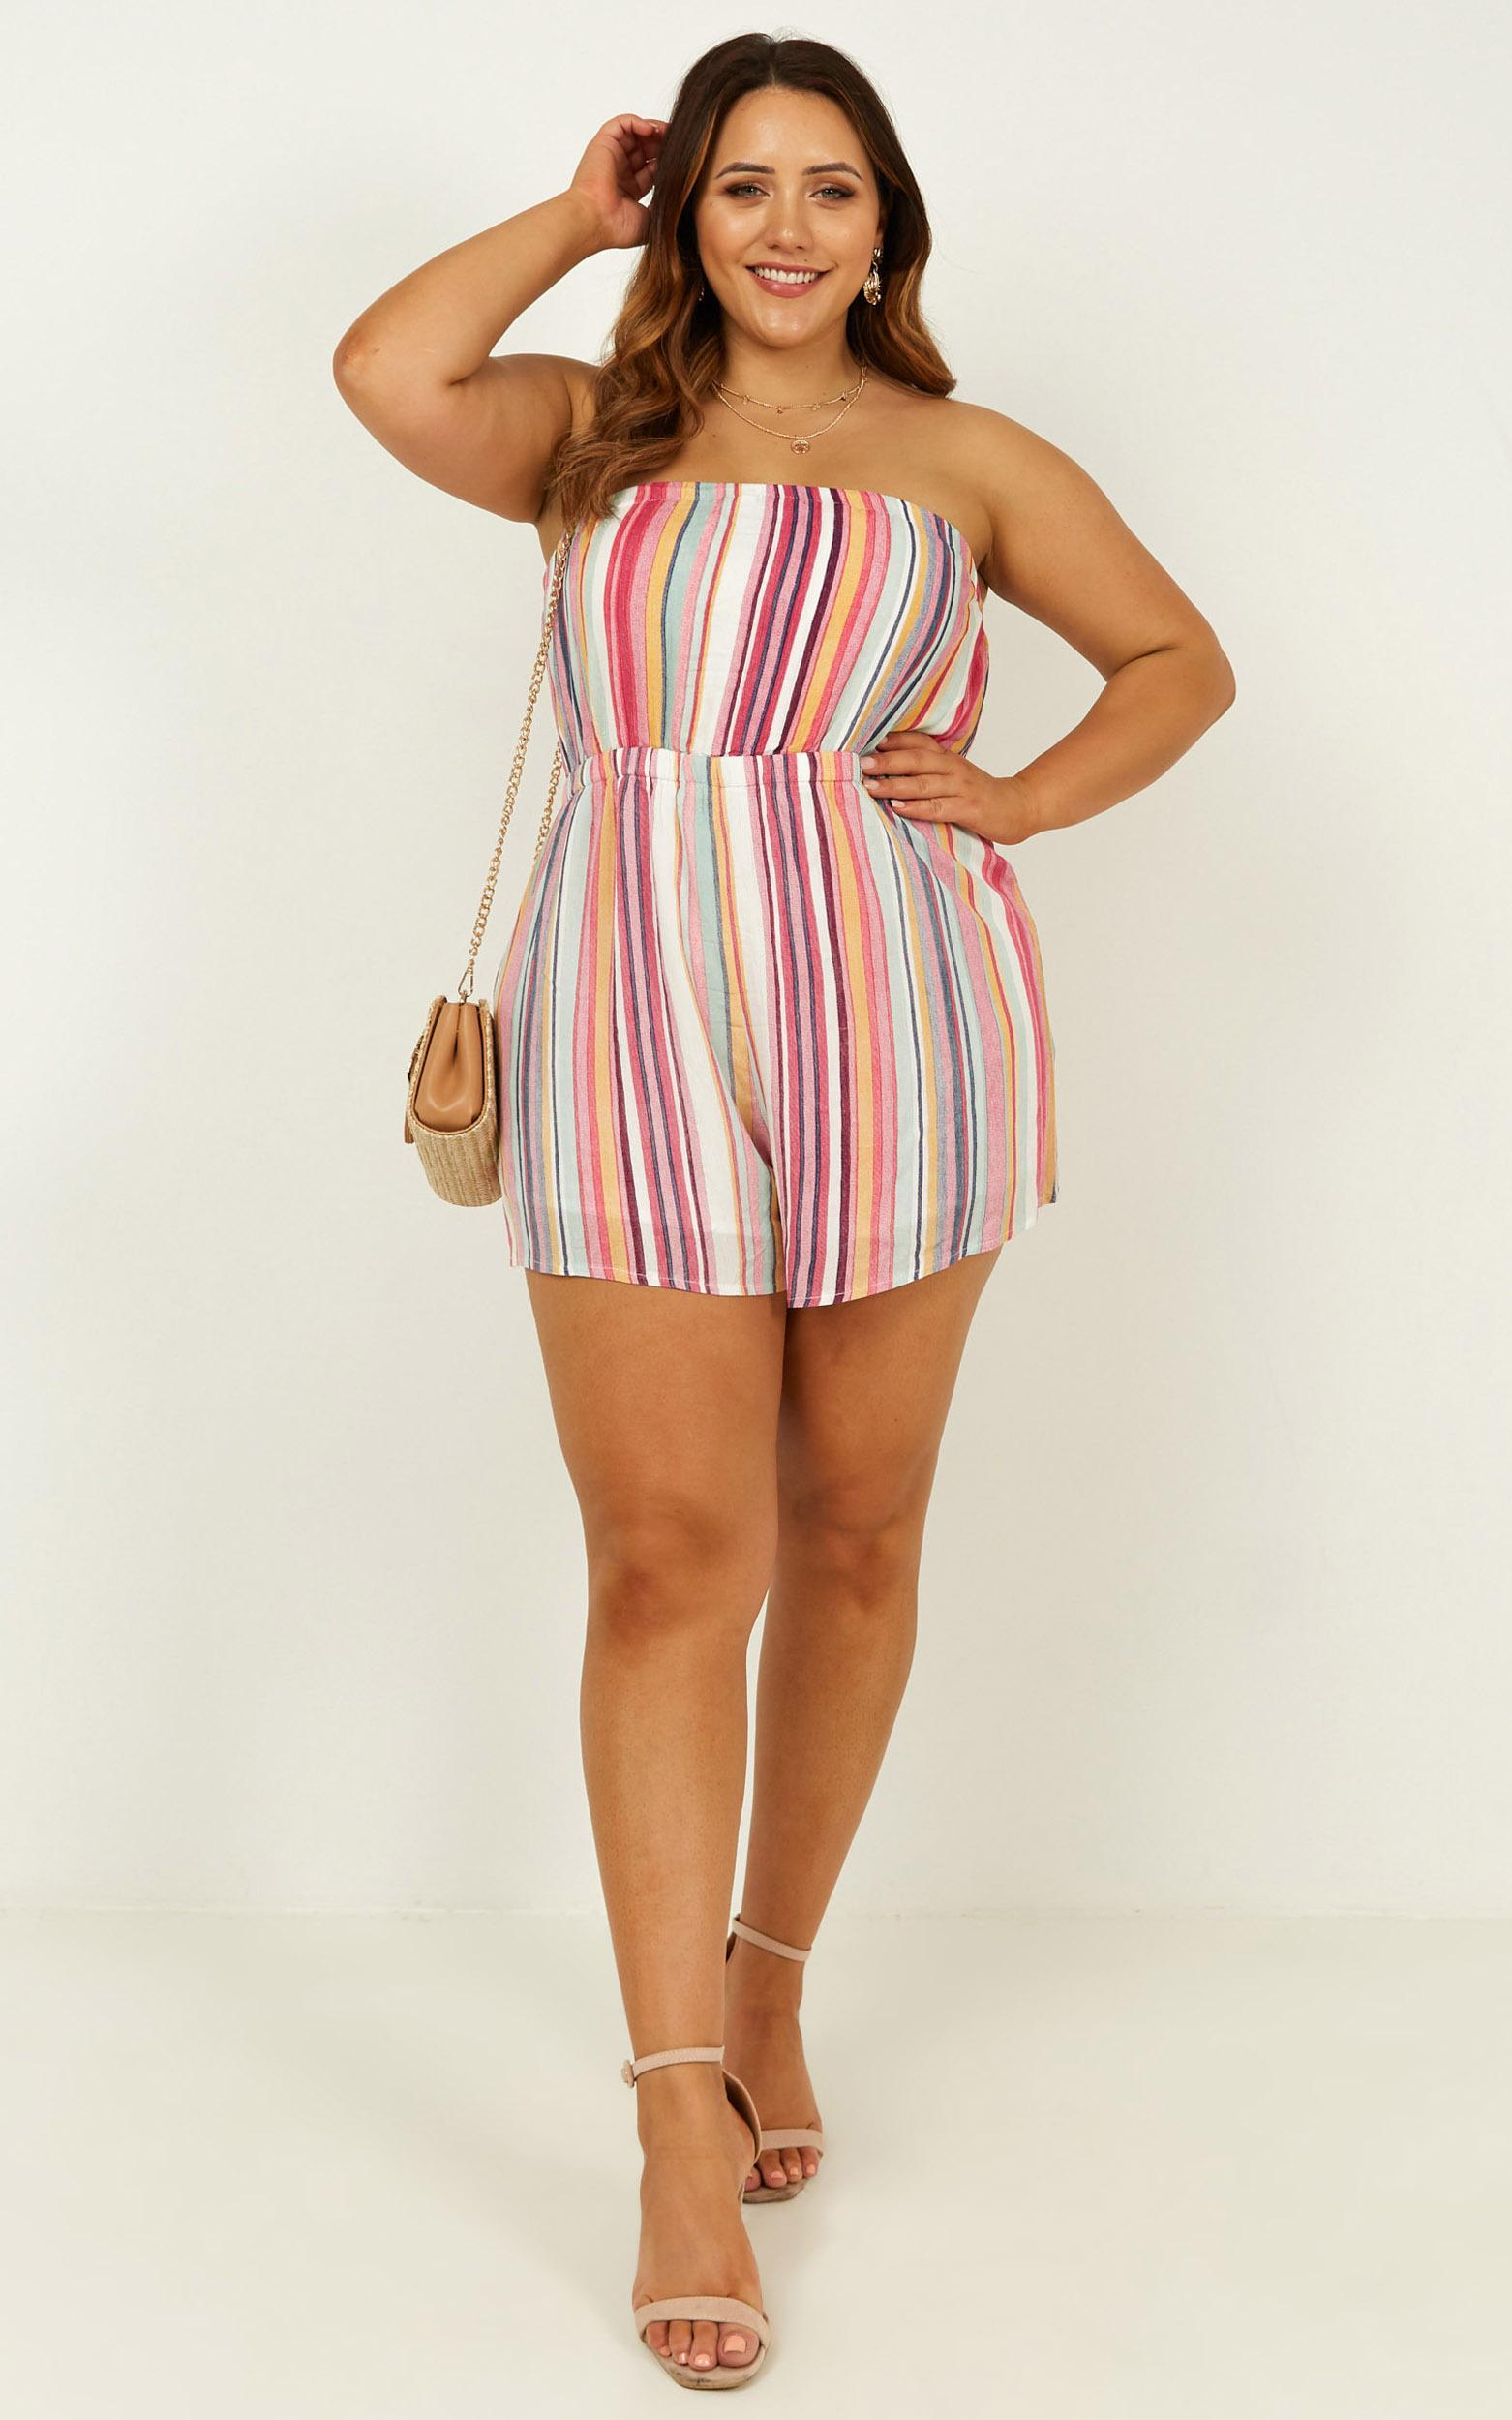 Fun For All Playsuit in rainbow stripe - 20 (XXXXL), Purple, hi-res image number null